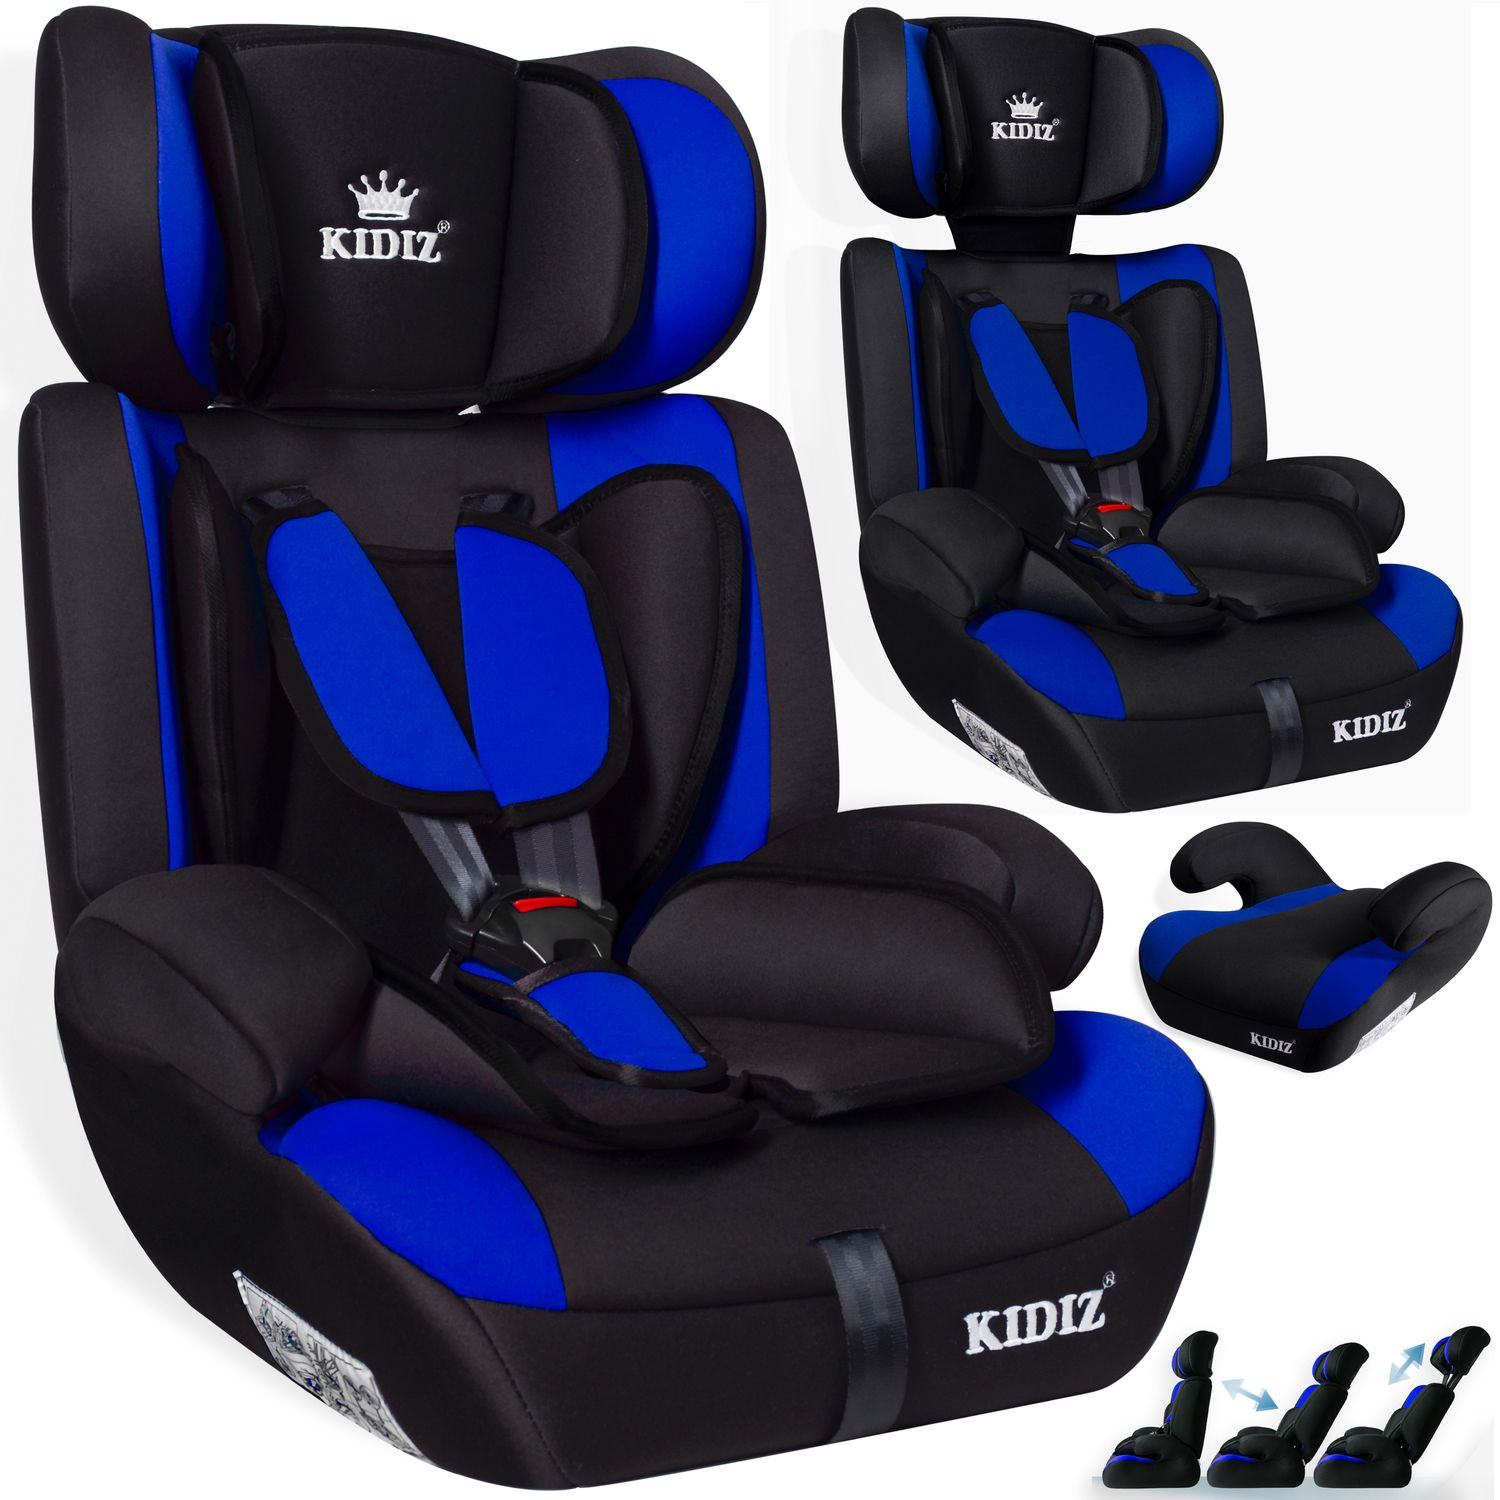 kidiz autokindersitz autositz kinderautositz 9 36 kg gruppe 1 2 3 kindersitz sl ebay. Black Bedroom Furniture Sets. Home Design Ideas